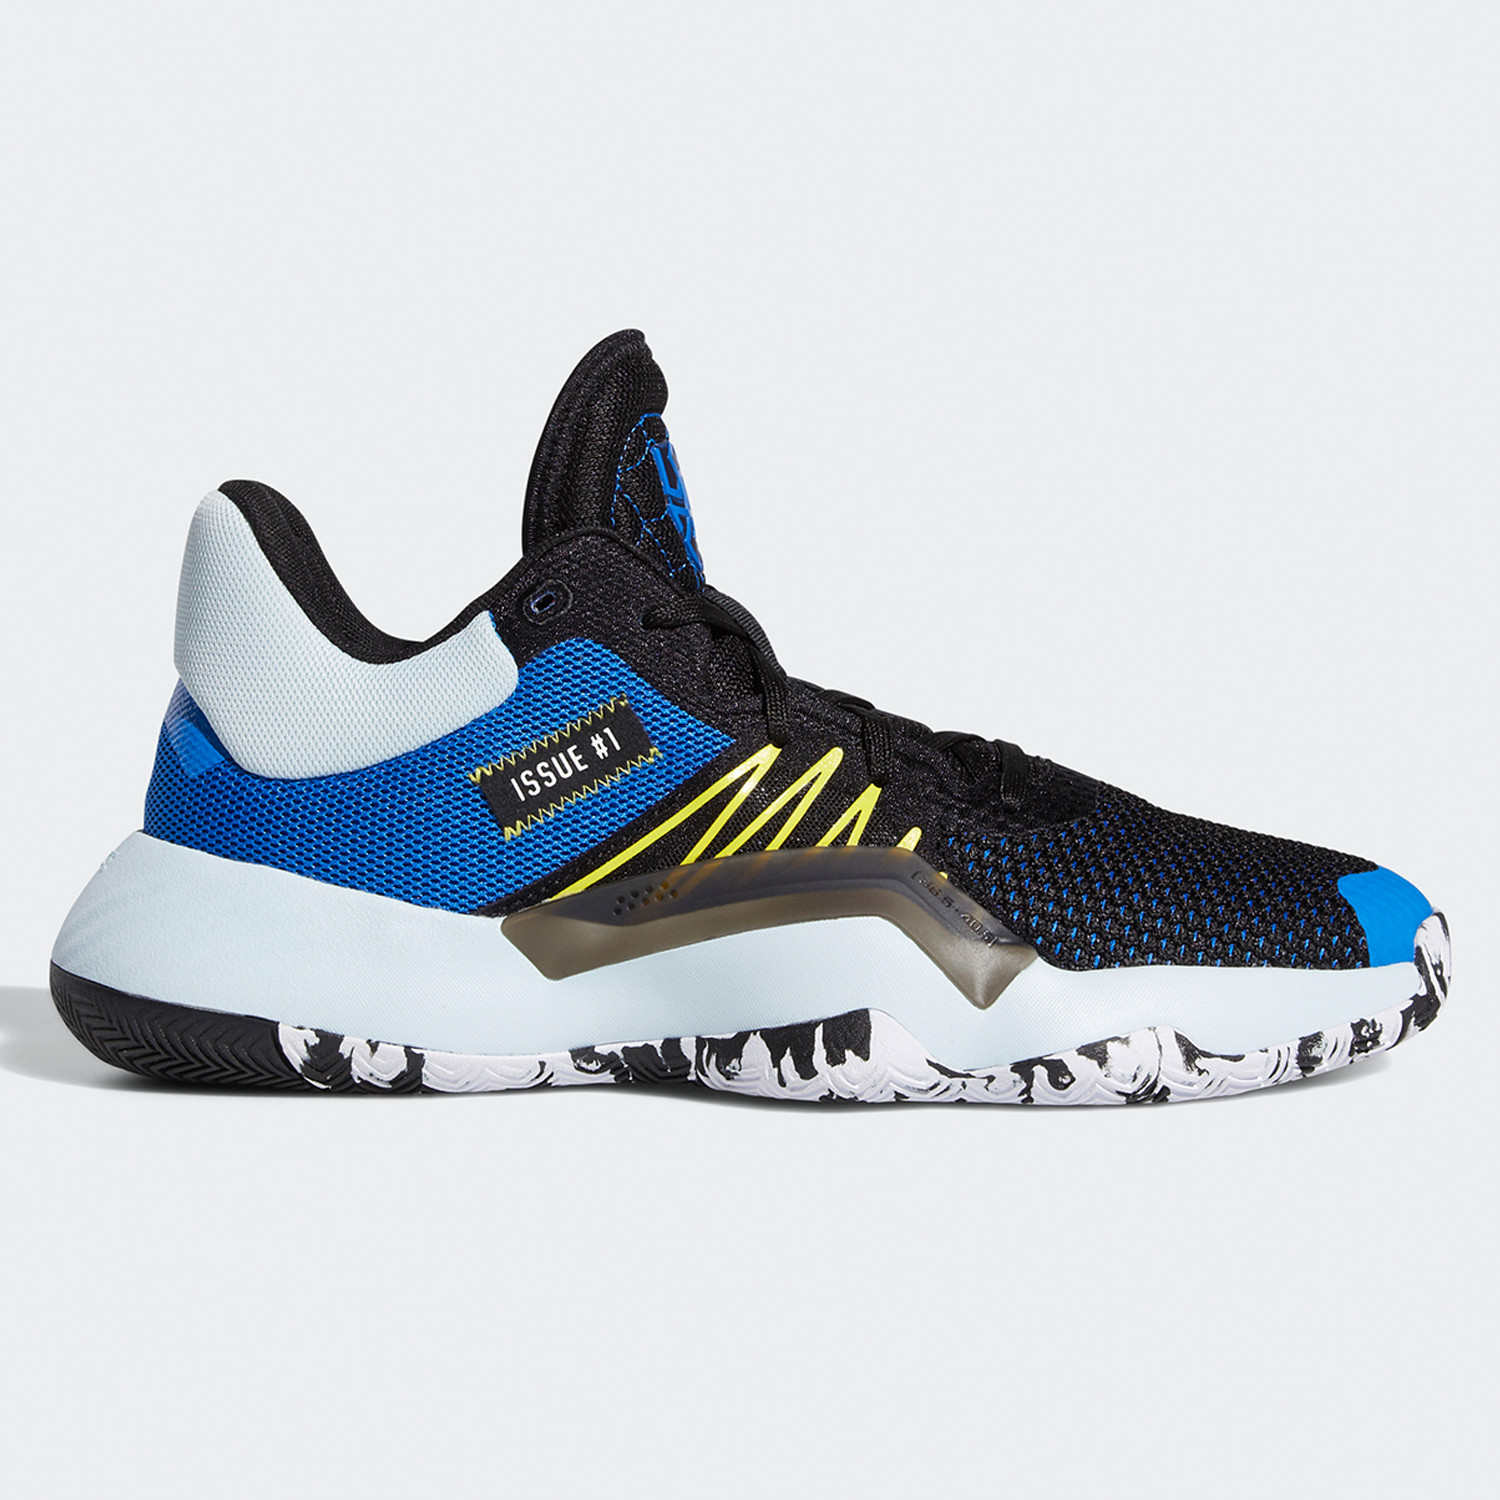 Adidas D.o.n. Issue 1 Men's Shoes (9000046121_43651)